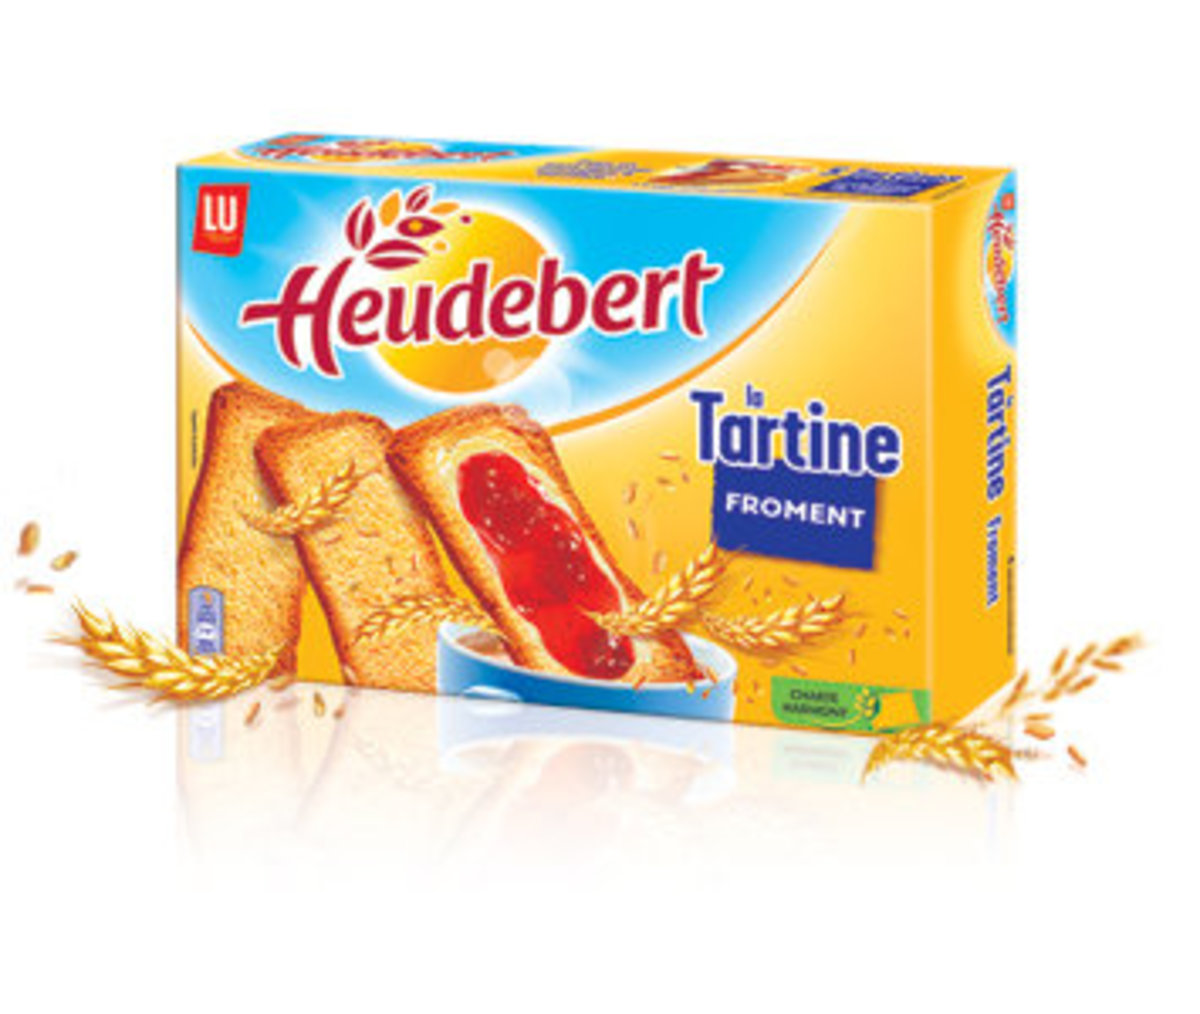 Direct from France - Individual packed biscuits (325g)